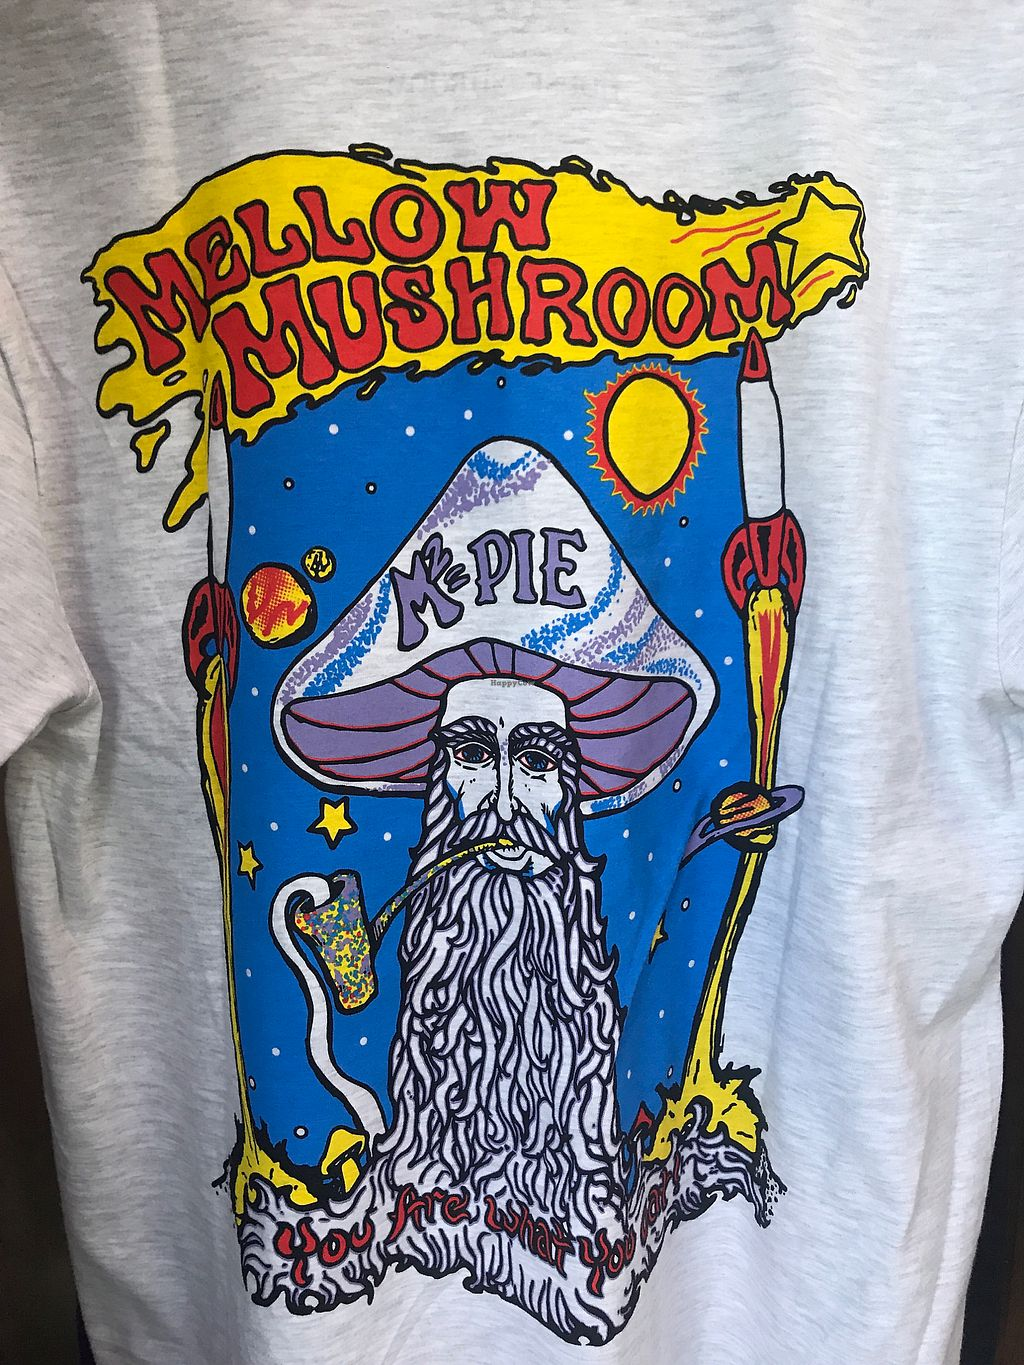 """Photo of Mellow Mushroom  by <a href=""""/members/profile/AmandaCox"""">AmandaCox</a> <br/>Cool Merch :)  <br/> September 13, 2017  - <a href='/contact/abuse/image/100940/304080'>Report</a>"""